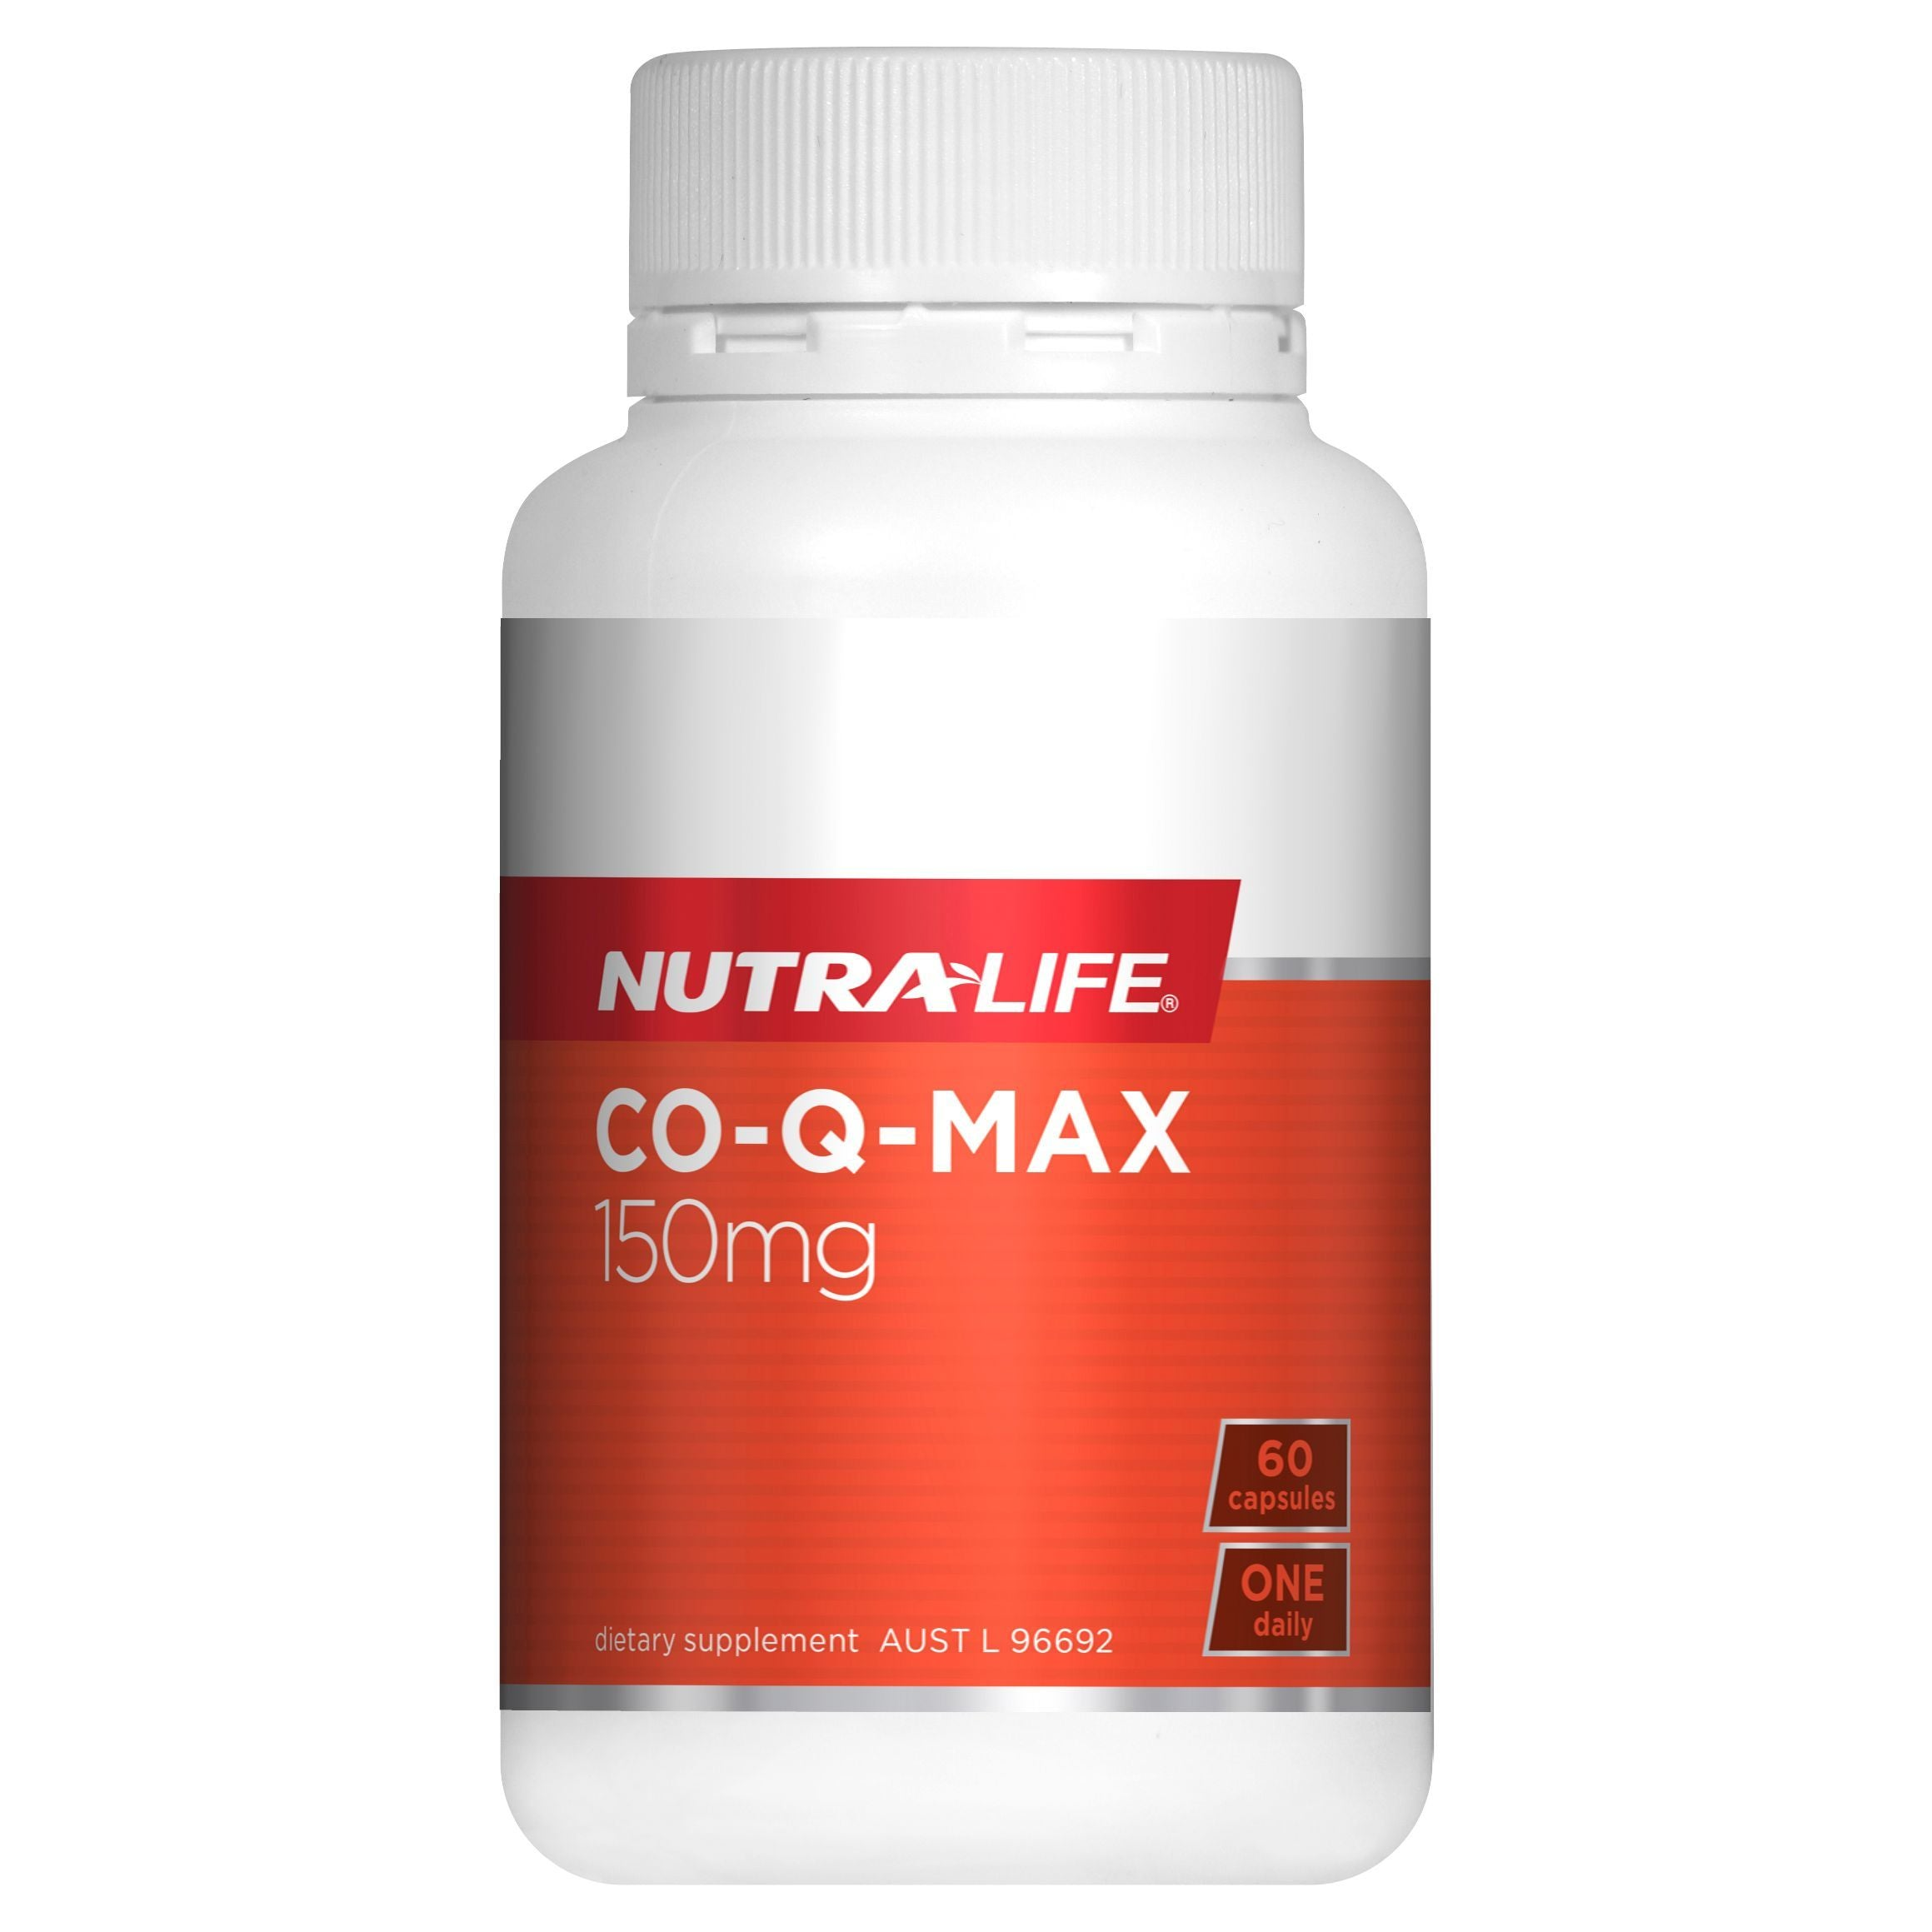 NUTRA-LIFE CO-Q-MAX 150MG 60C